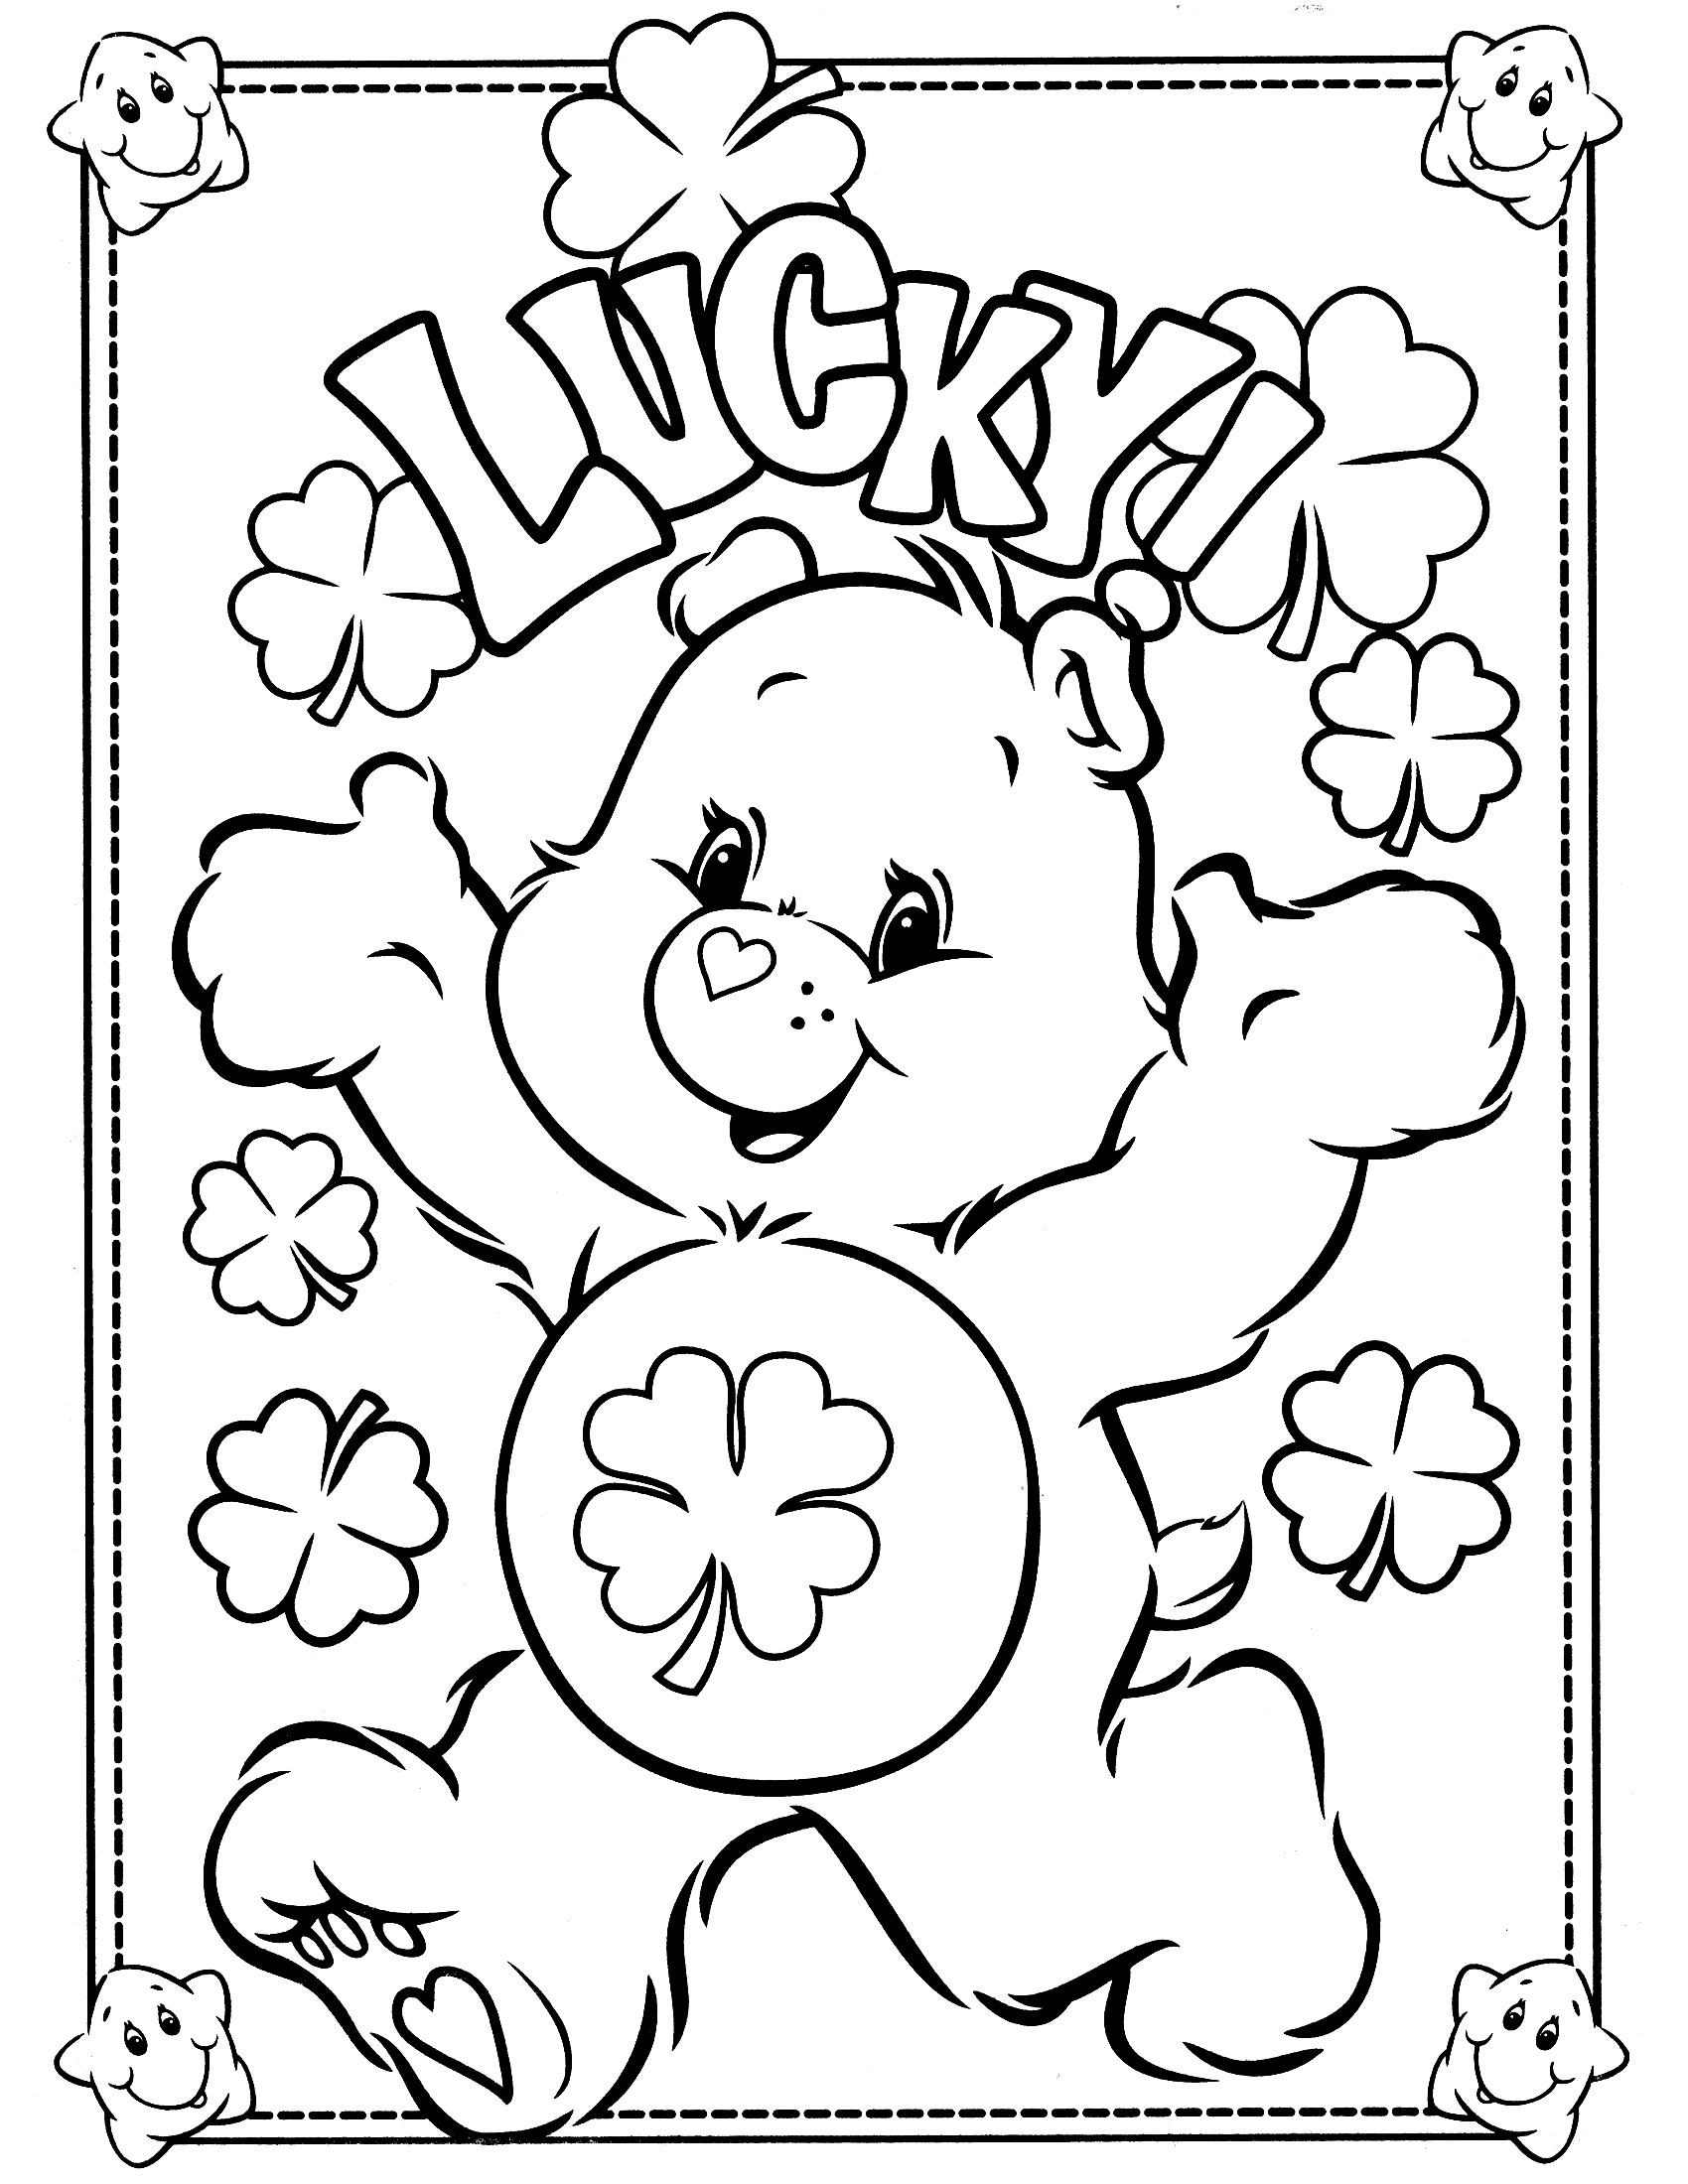 Free printable care bear coloring pages for kids for Coloring book pages free